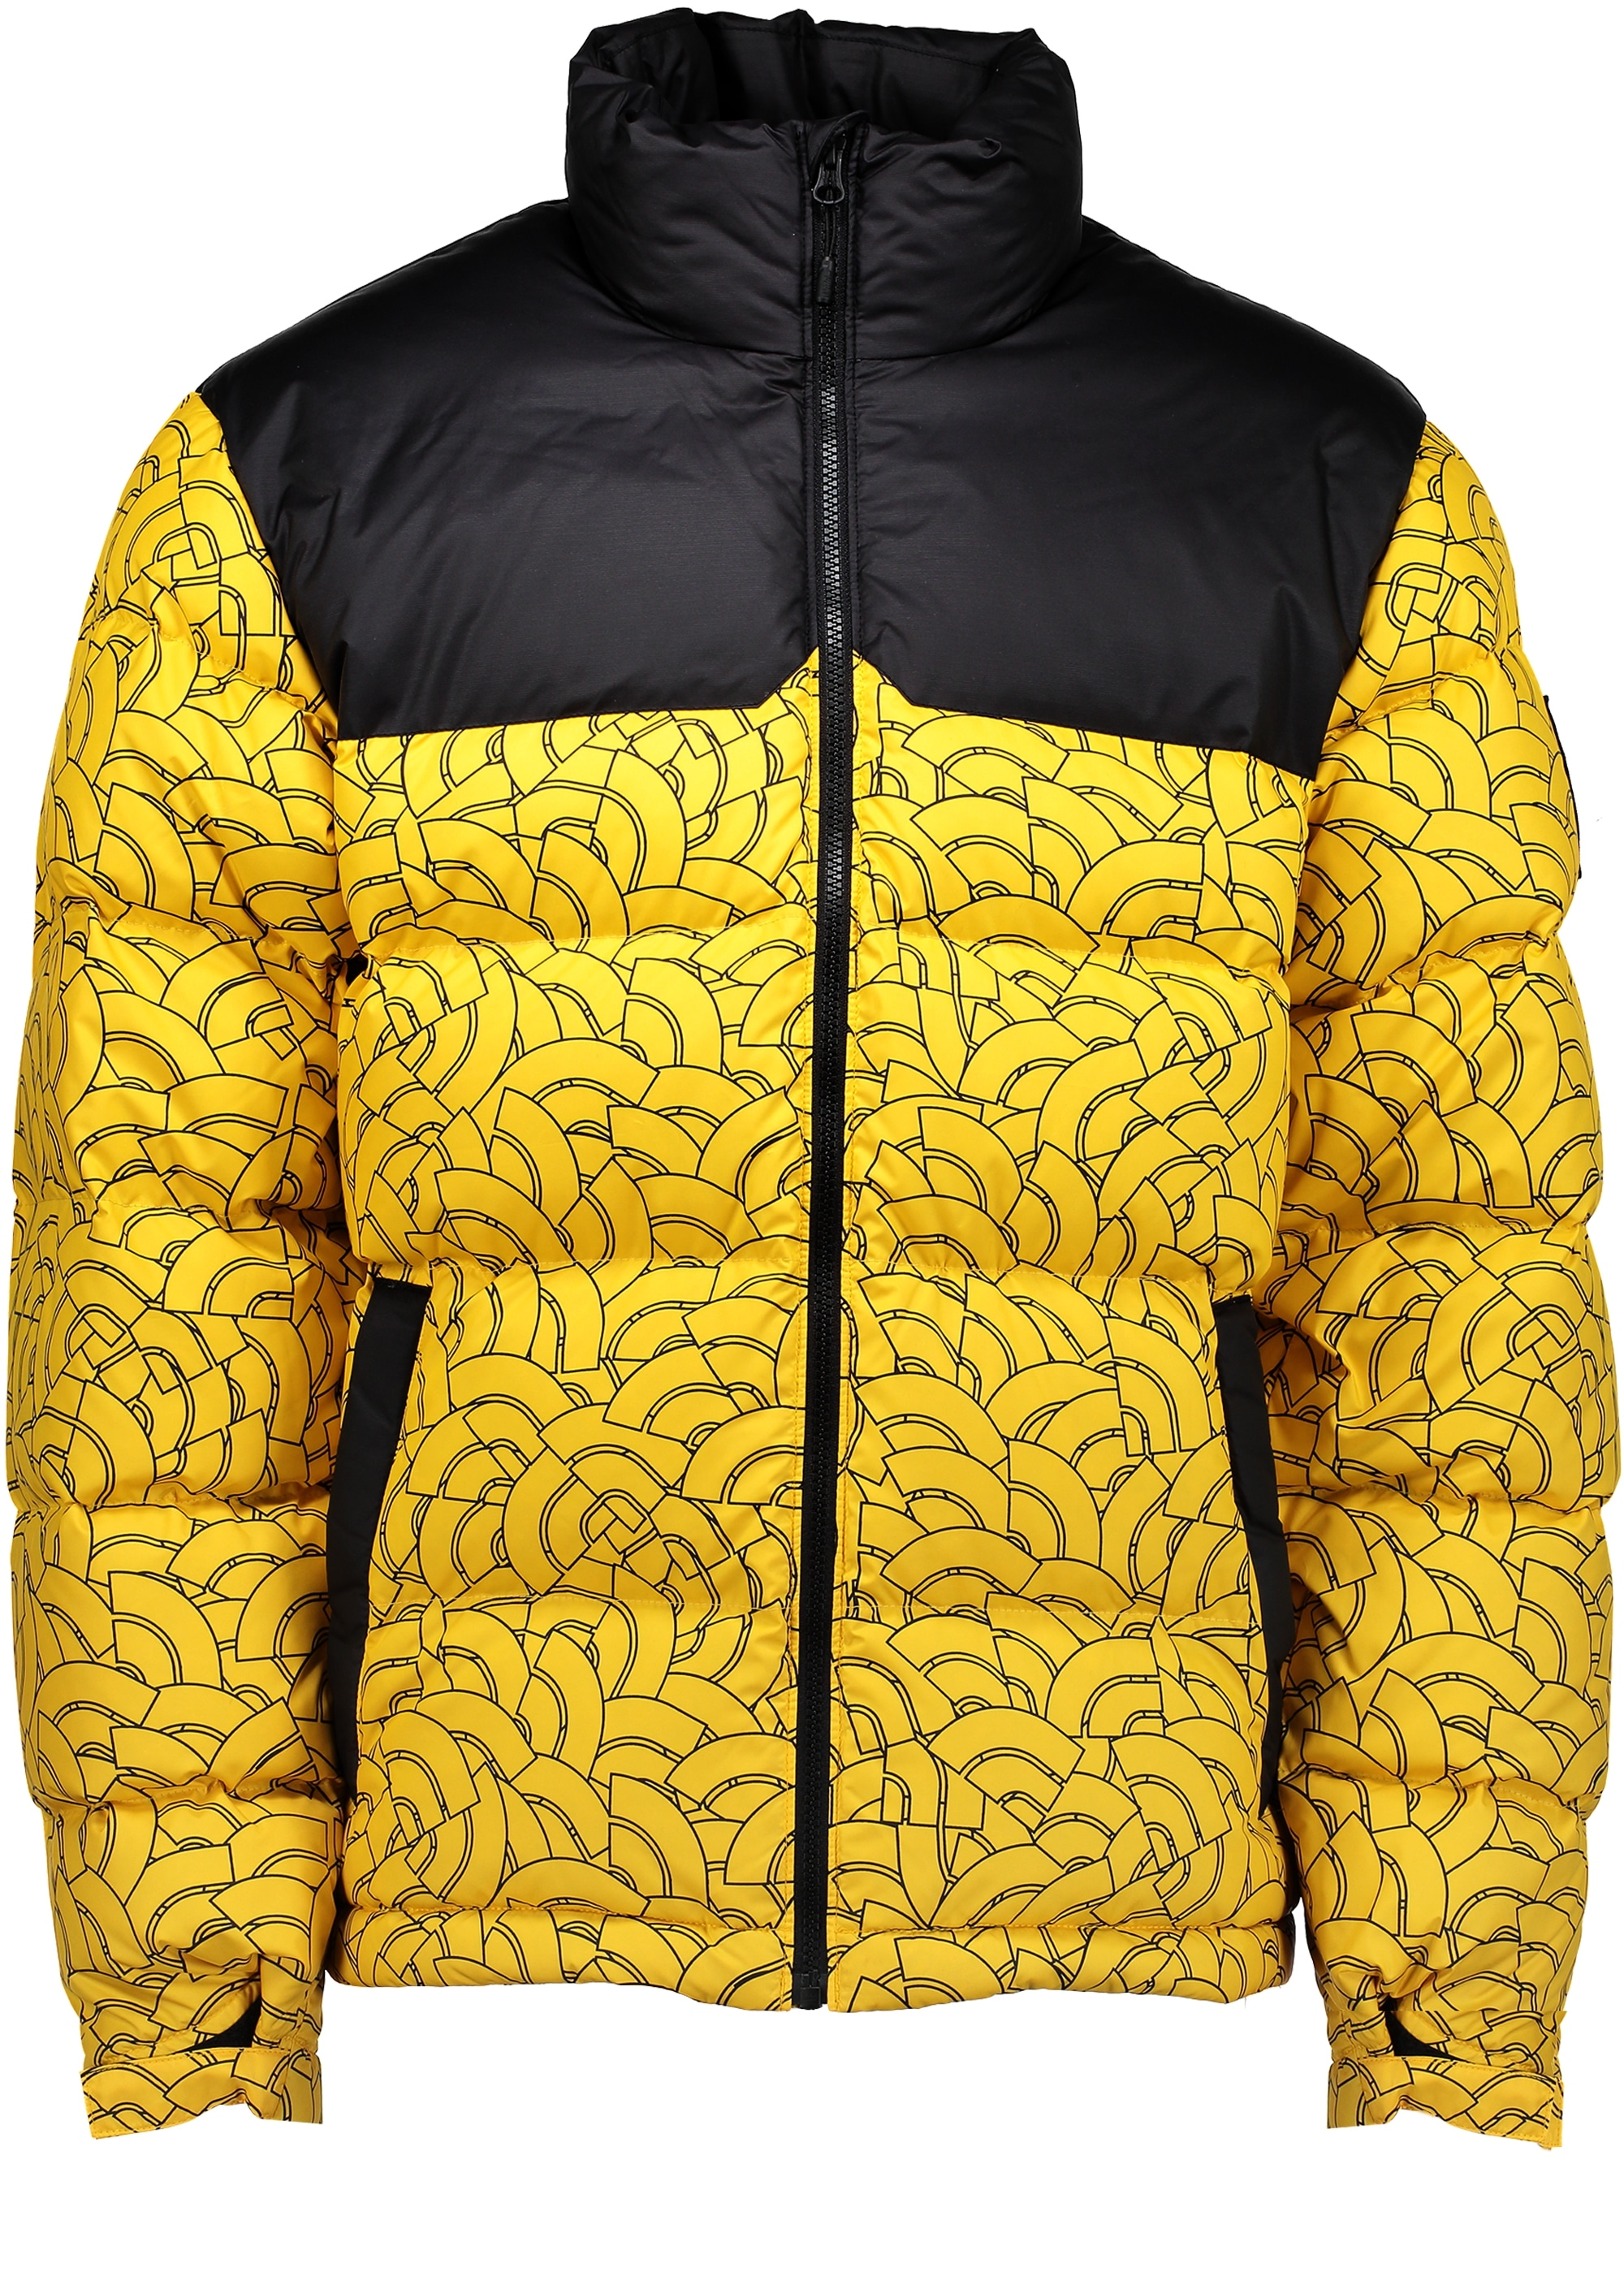 north face puffer coat yellow